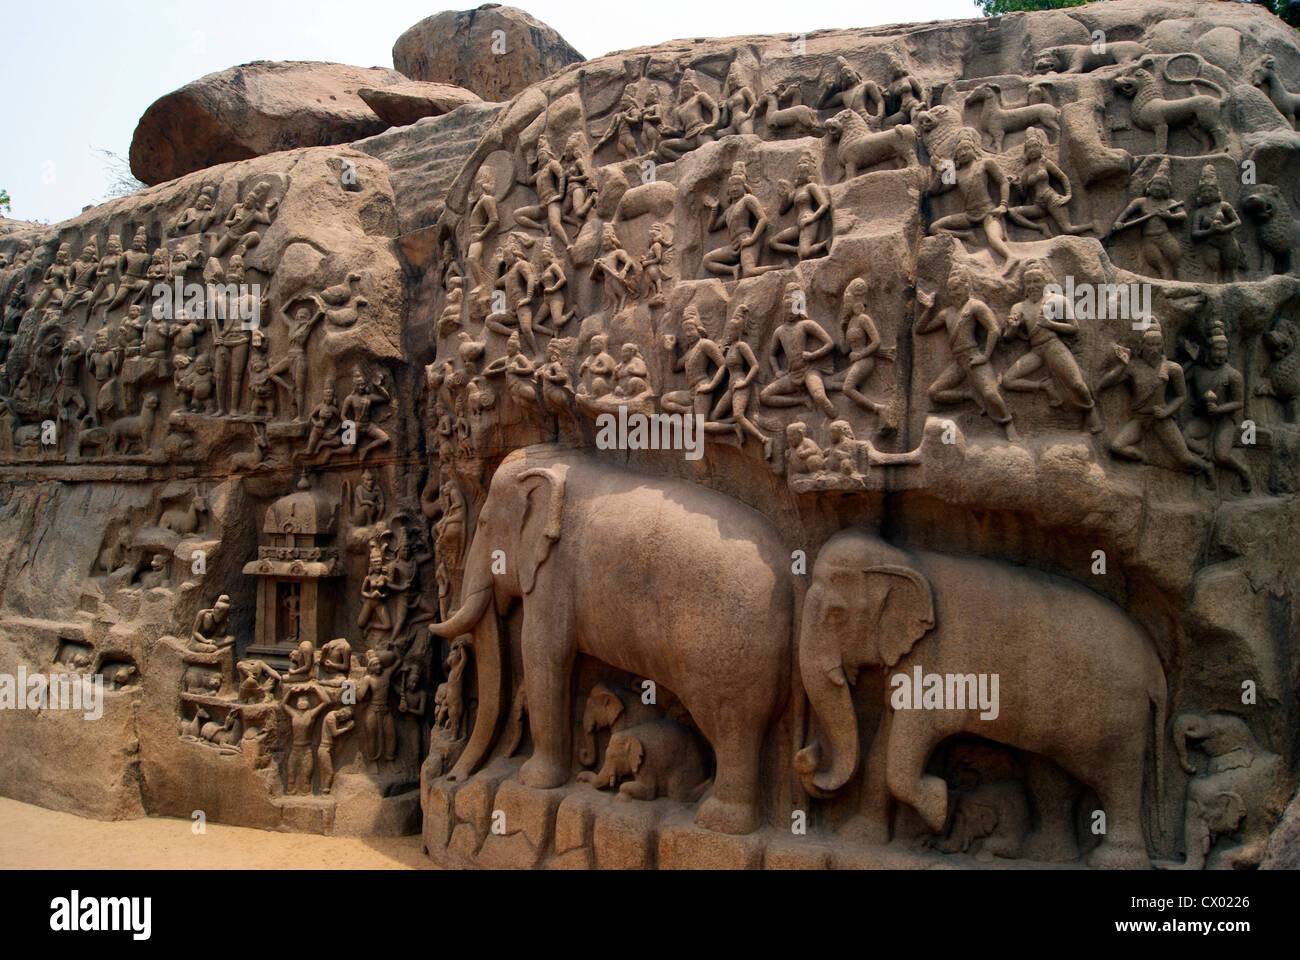 Arjuna Penance Stone Carvings in Mahabalipuram Tamil Nadu India, world largest stone bas relief and UNESCO world - Stock Image